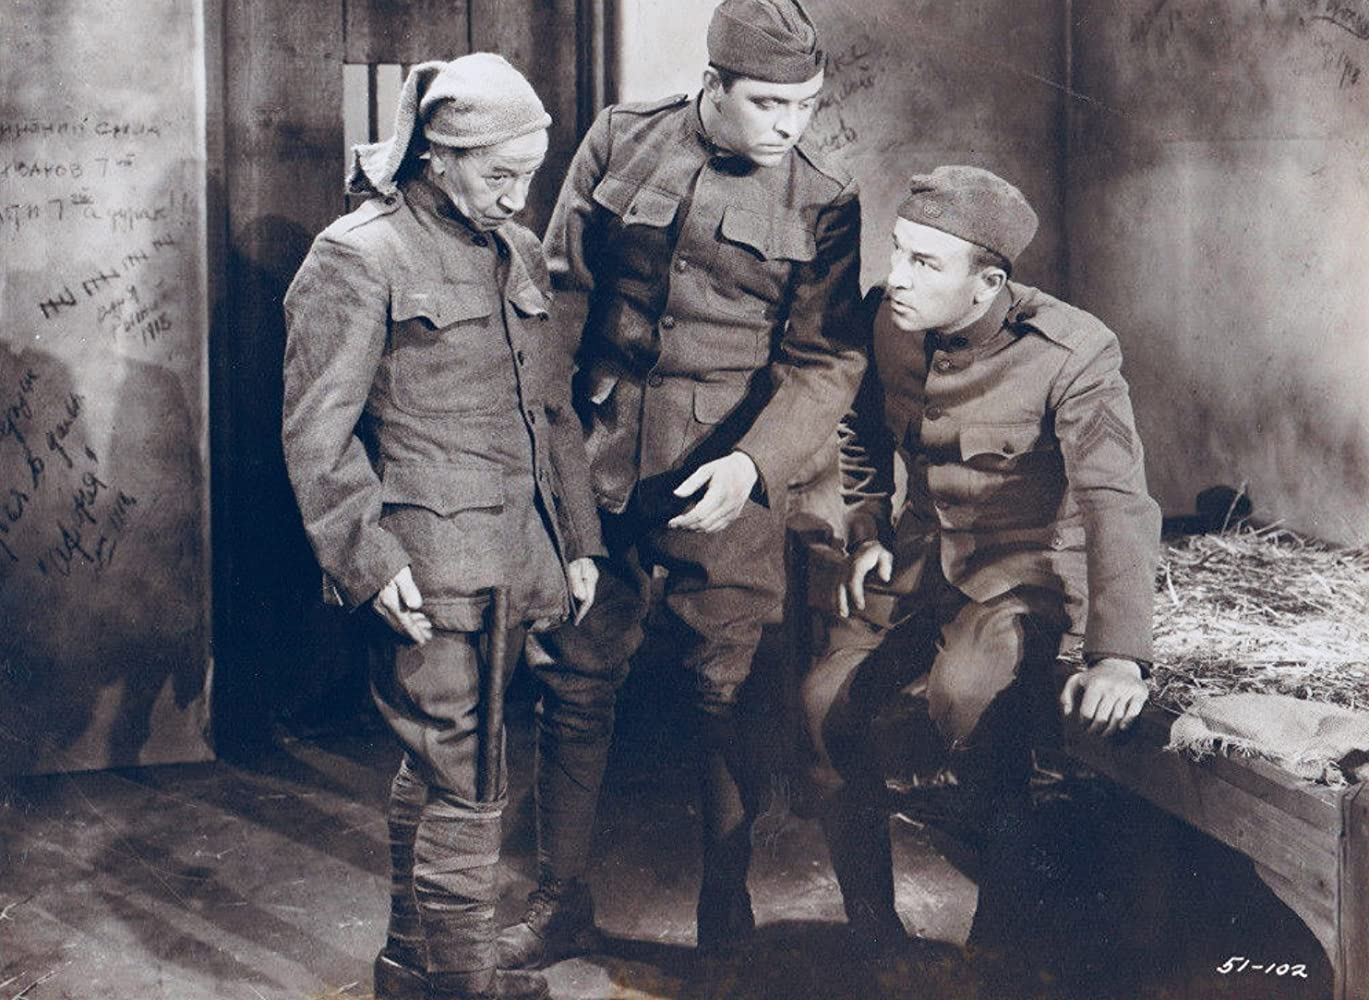 Robert Armstrong, Donald Meek, and Lyle Talbot in Three Legionnaires (1937)